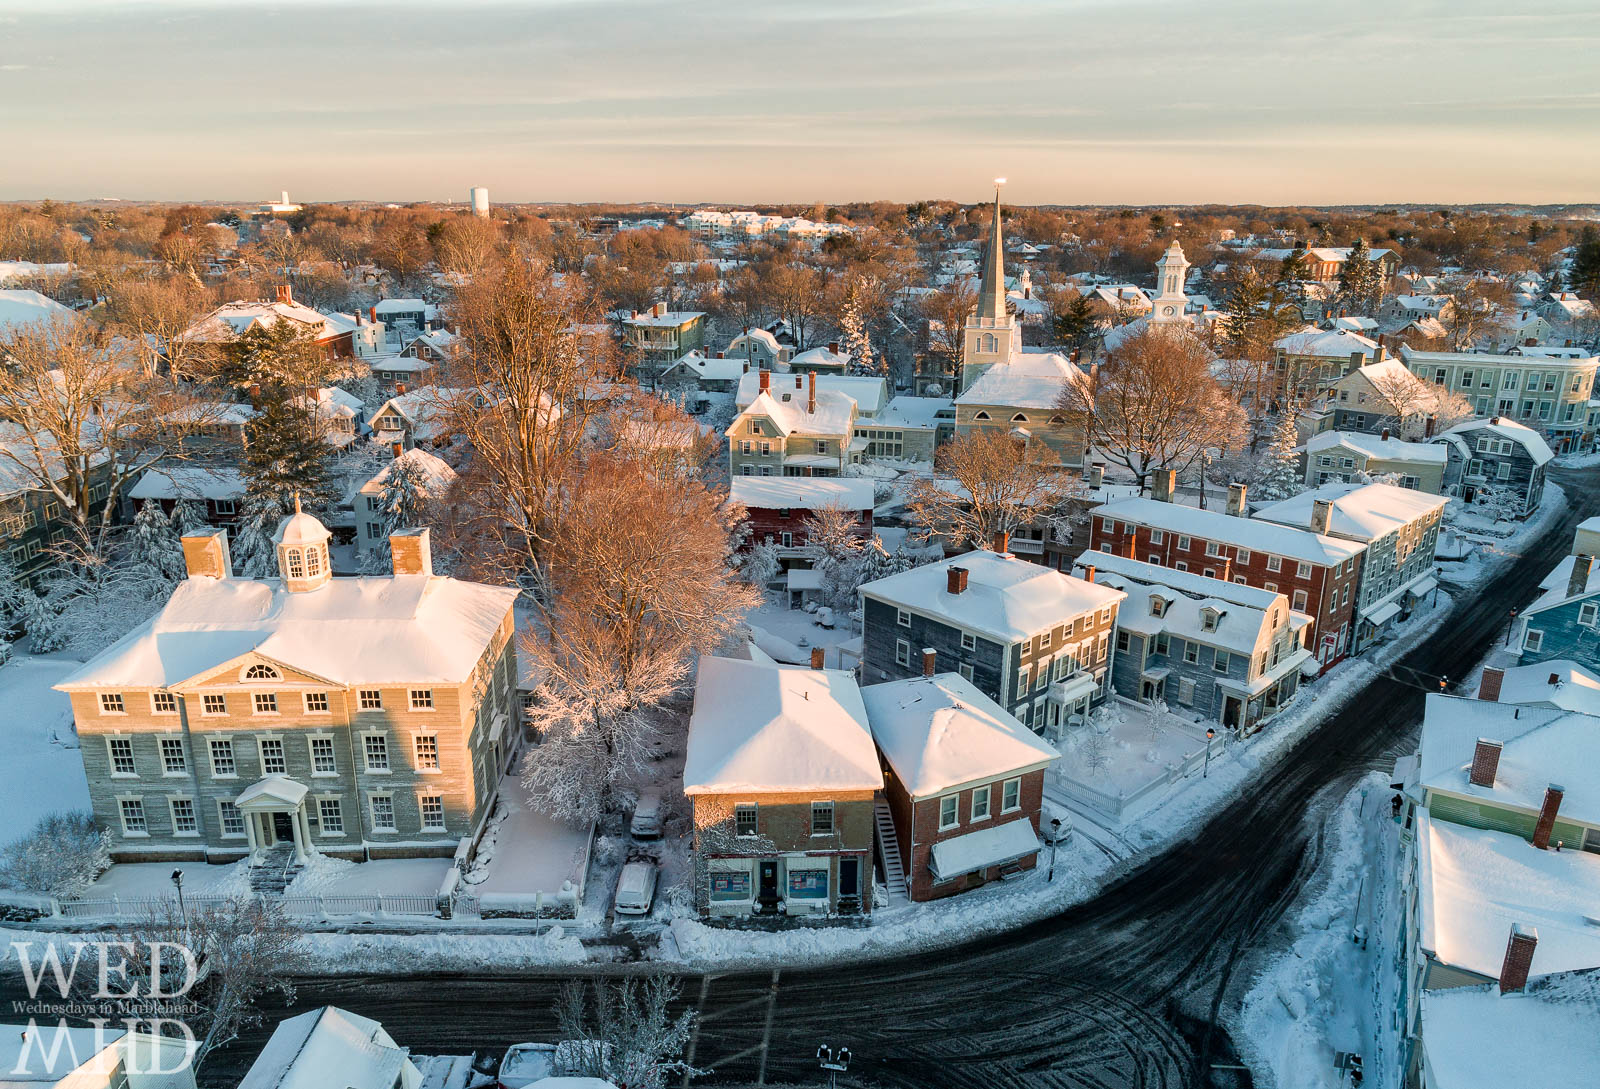 The Lee Mansion, St Michaels Steeple and numerous examples of classic architecture are seen in this aerial view of historic downtown Marblehead after a blizzard